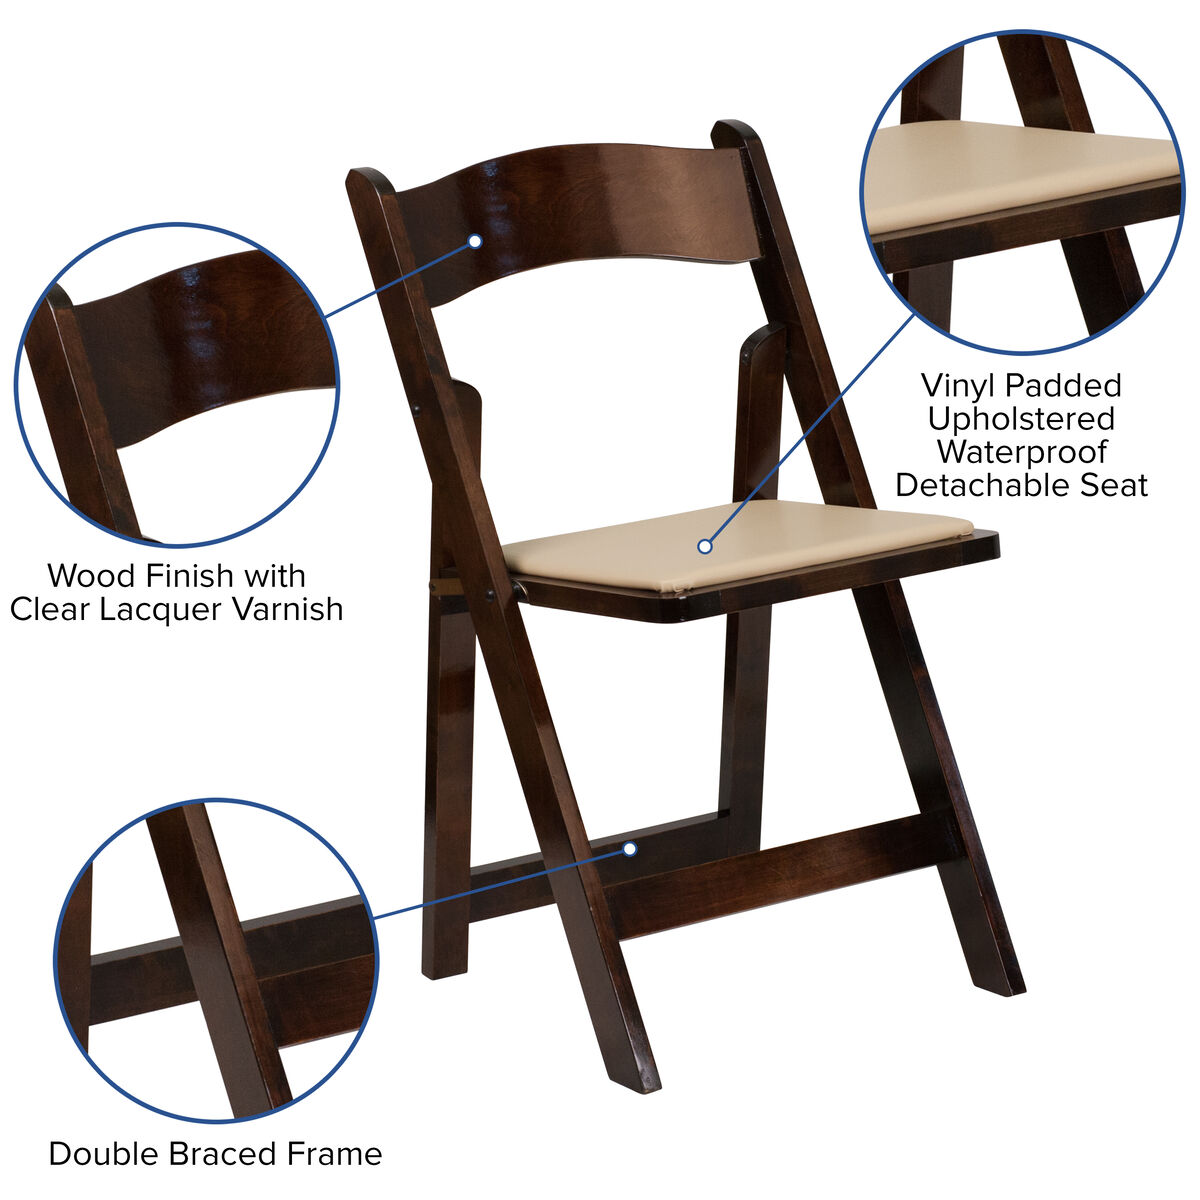 Awe Inspiring Hercules Series Fruitwood Wood Folding Chair With Vinyl Padded Seat Pabps2019 Chair Design Images Pabps2019Com